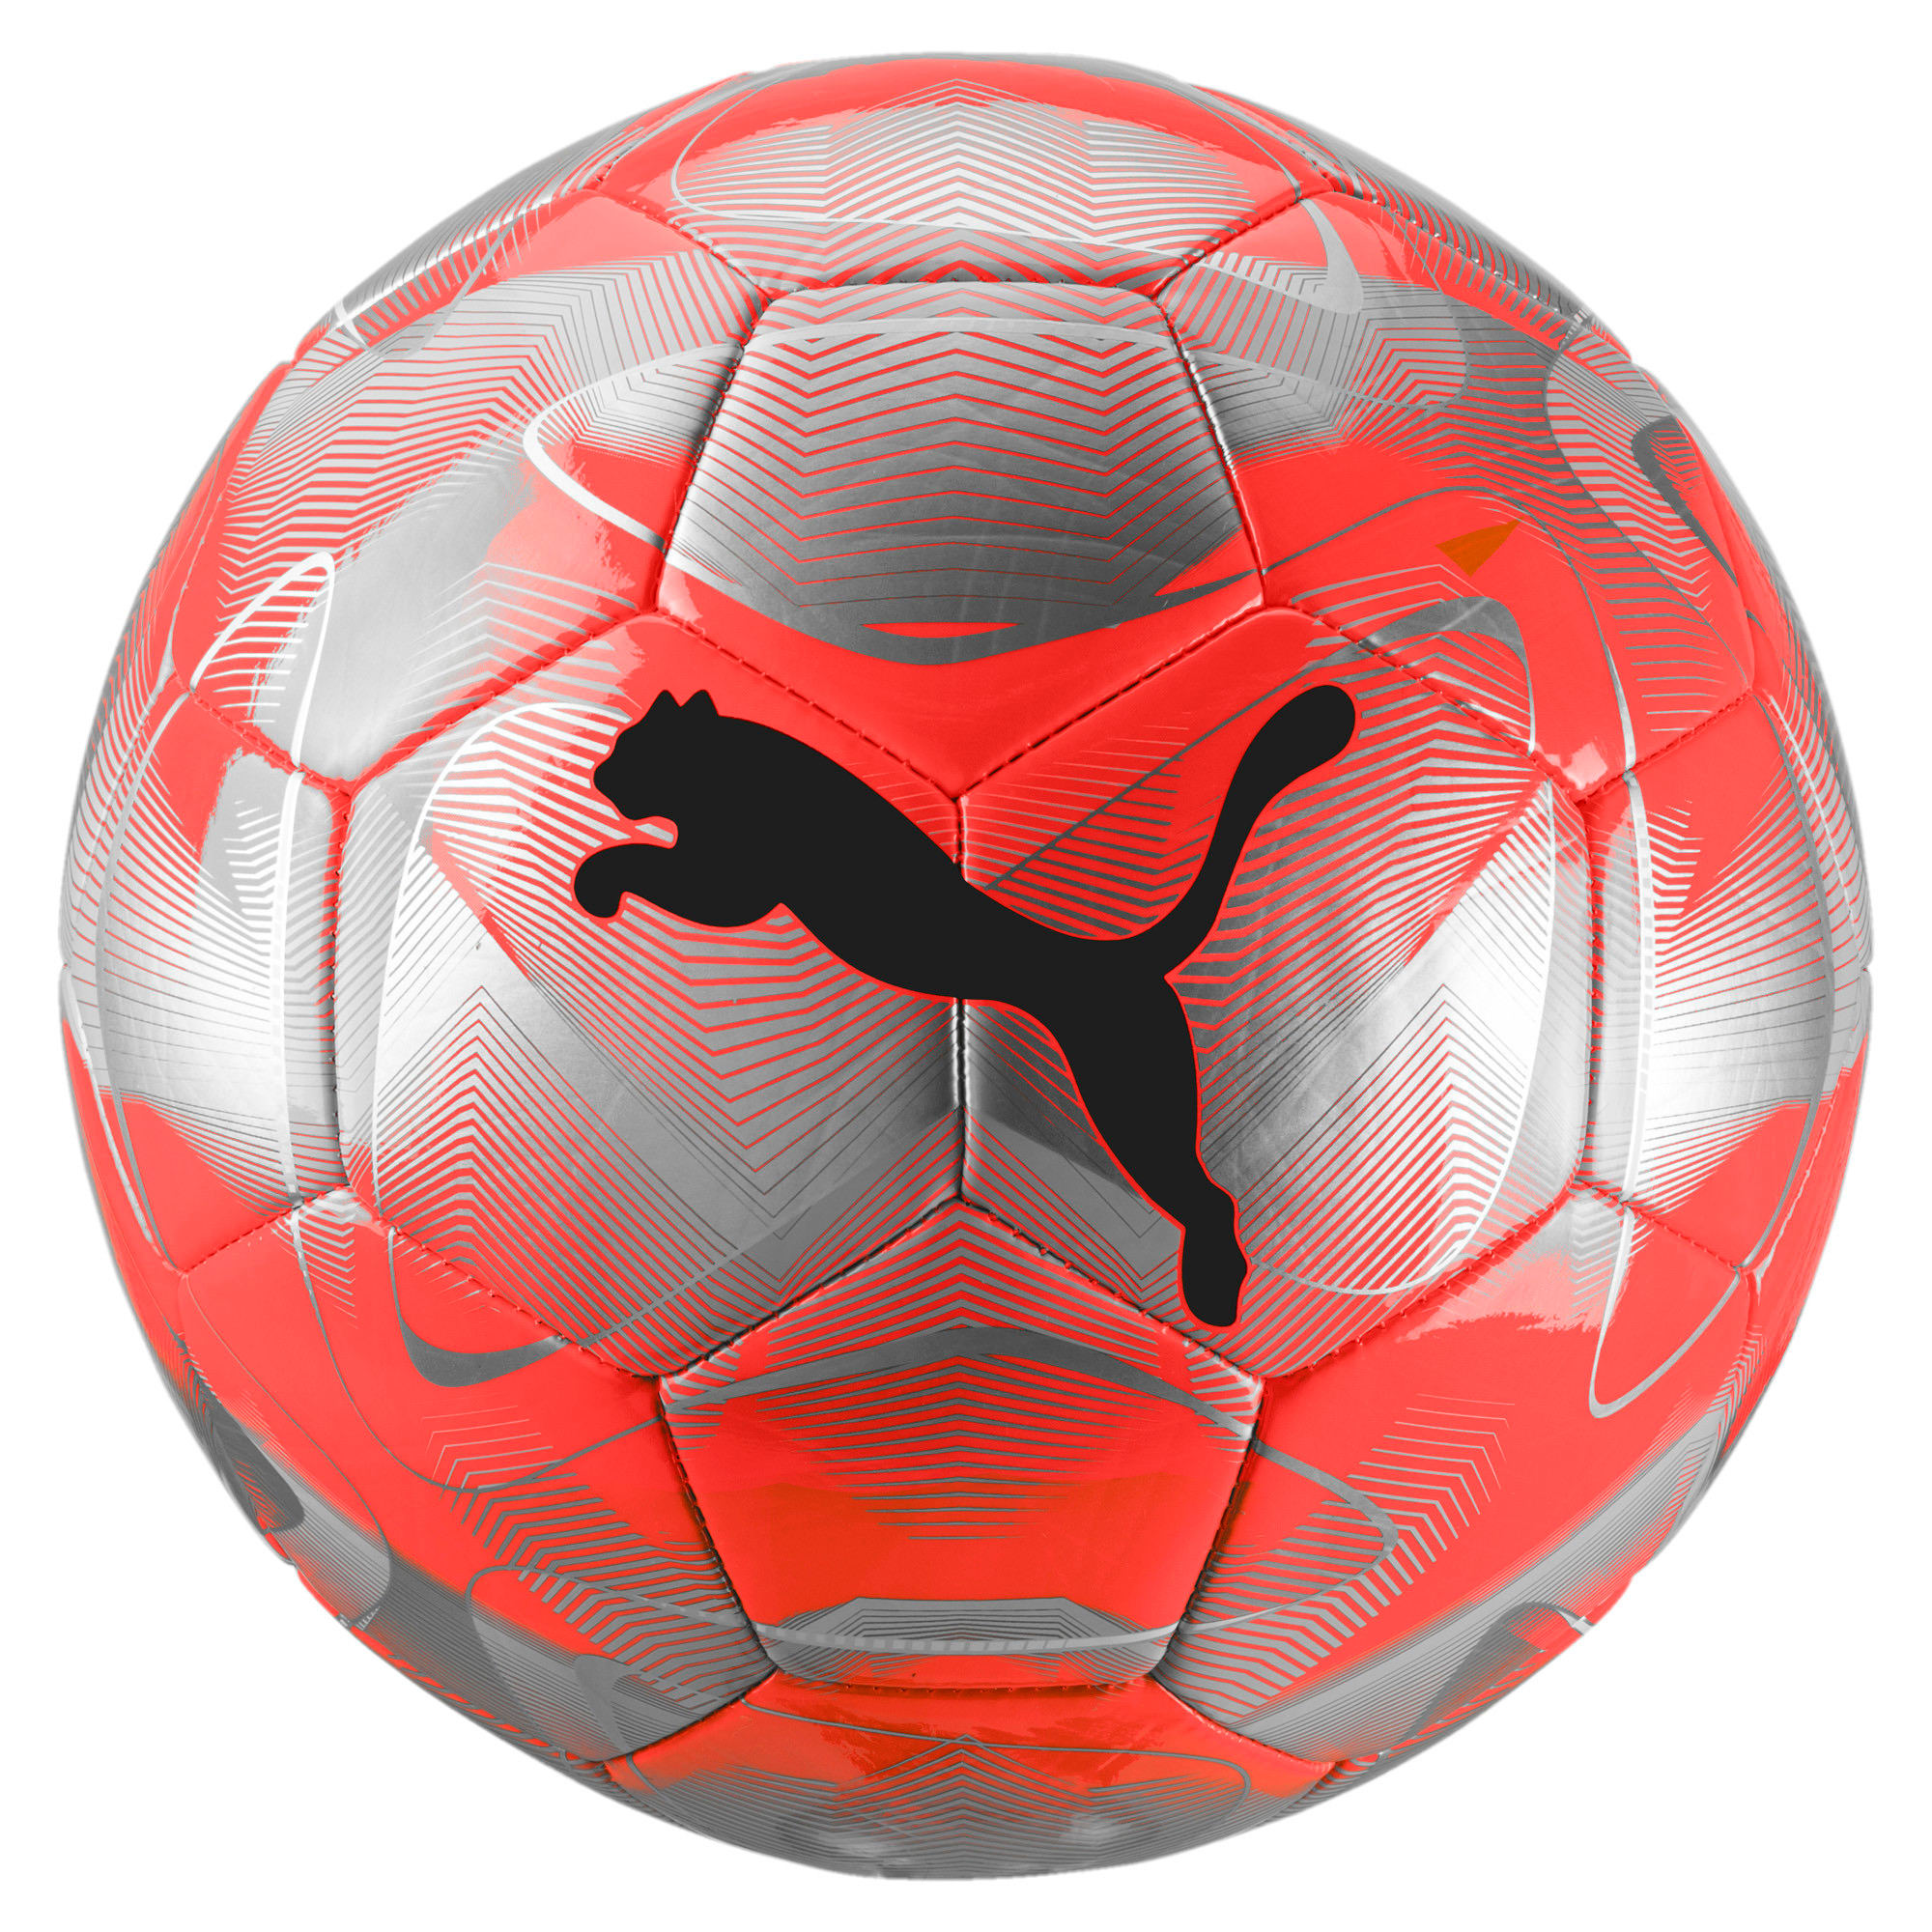 FUTURE Flash Soccer Ball, Nrgy Red-Silver-Grey-Black, large